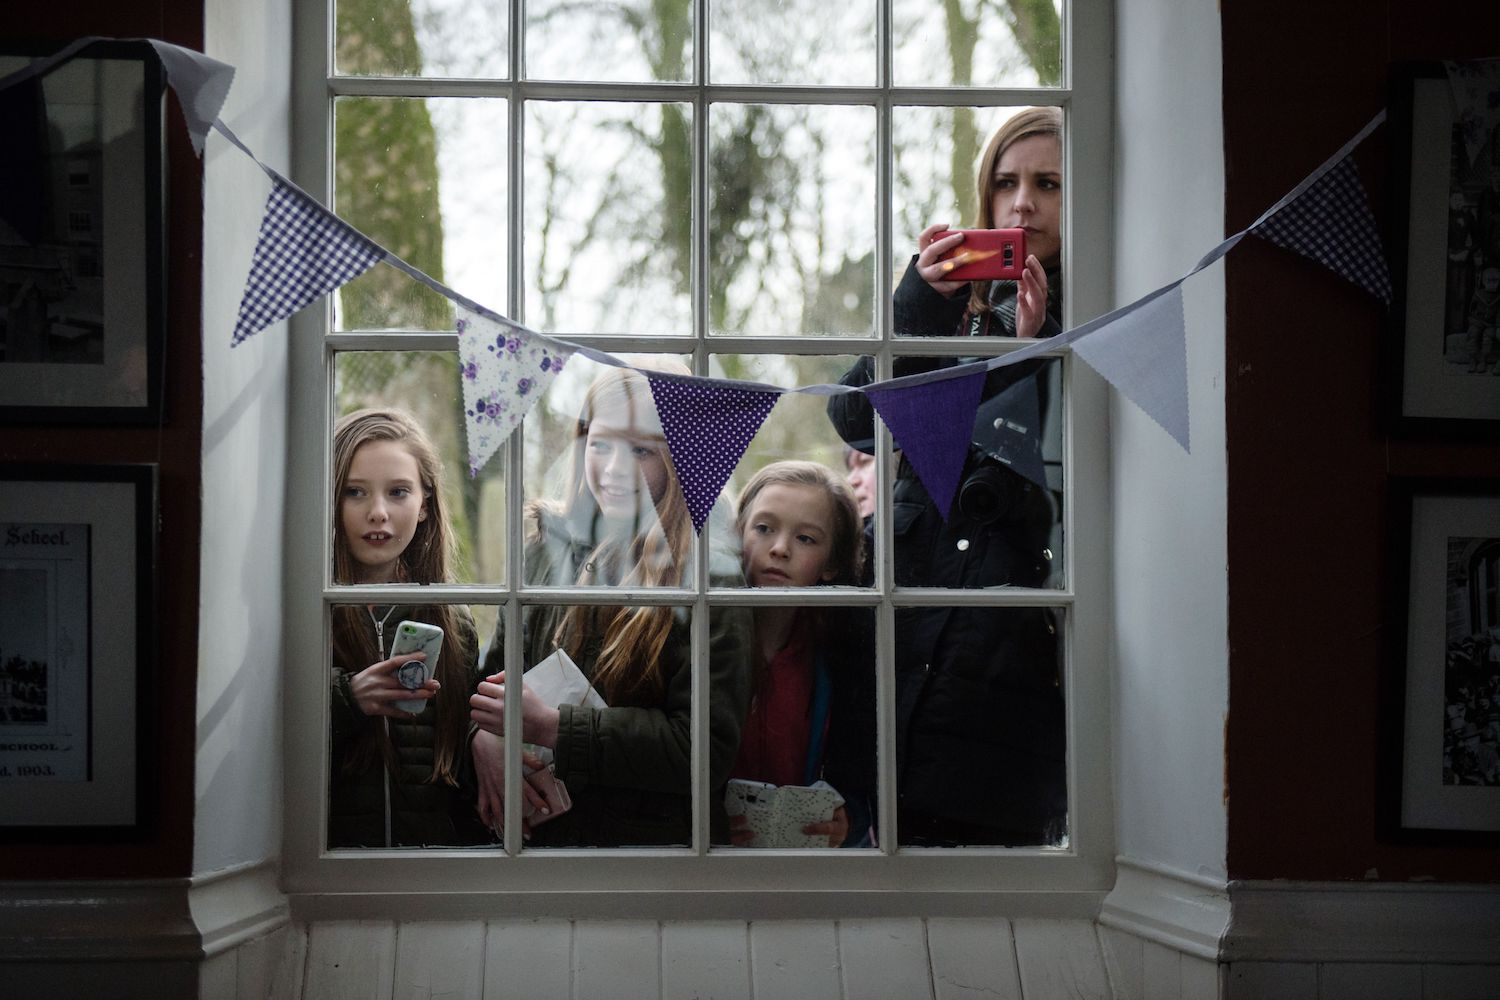 TOPSHOT - Members of the public watch as Britain's Camilla, Duchess of Cornwall speaks to school children after a visit to mark the bicentenary of the birth of Emily Bronte, to The Bronte Parsonage Museum, the former home of the Bronte family, in Haworth, northern England on February 16, 2018,   / AFP PHOTO / POOL / OLI SCARFF        (Photo credit should read OLI SCARFF/AFP/Getty Images)